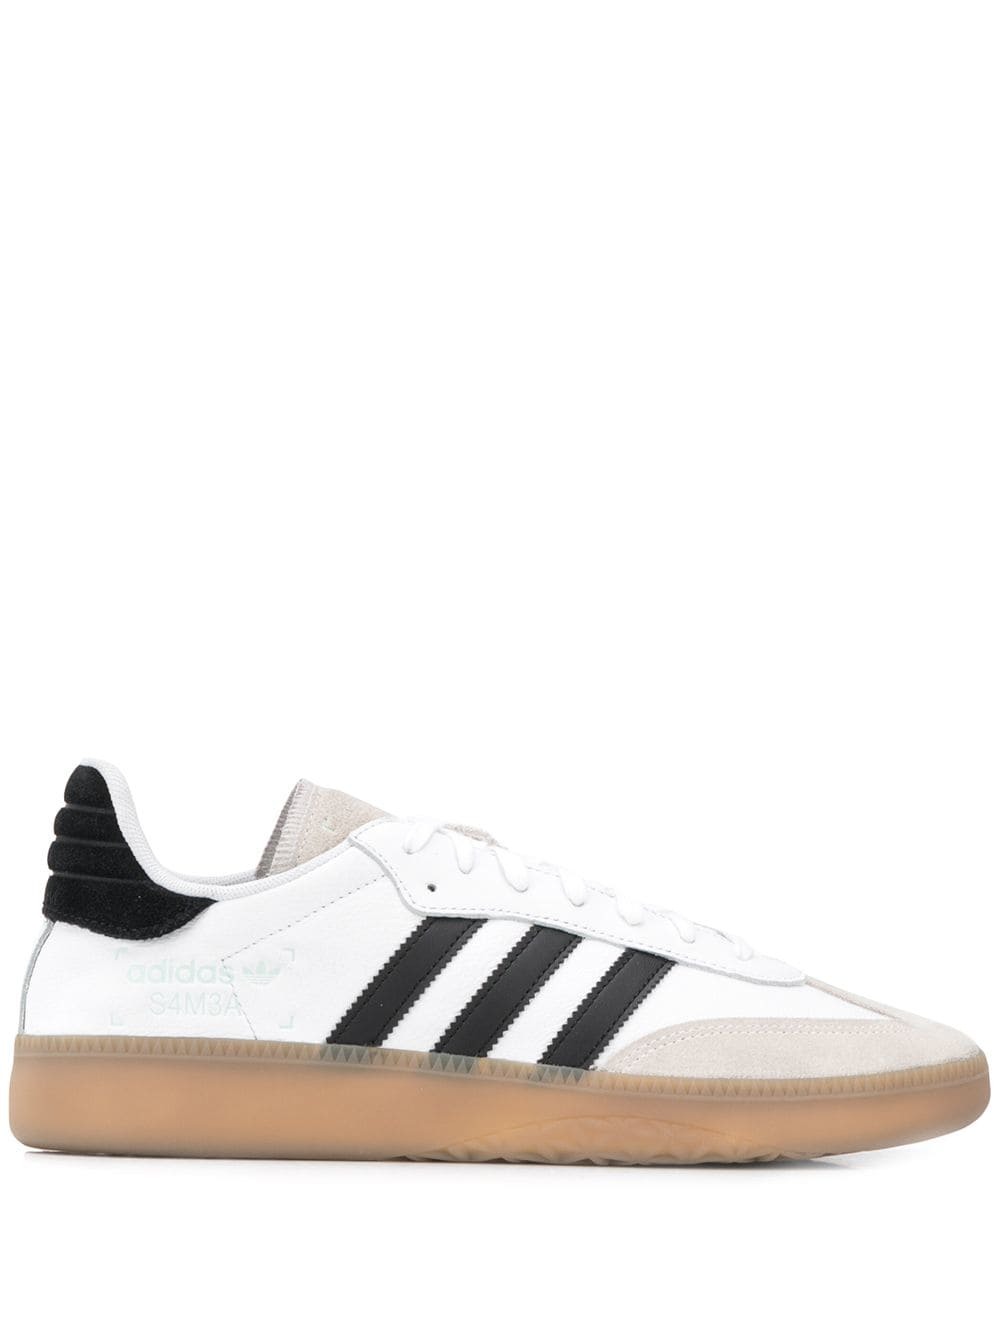 quality design 9ebcb dcf48 ADIDAS ORIGINALS ADIDAS SAMBA RM BOOST SNEAKERS - BLACK.  adidasoriginals   shoes